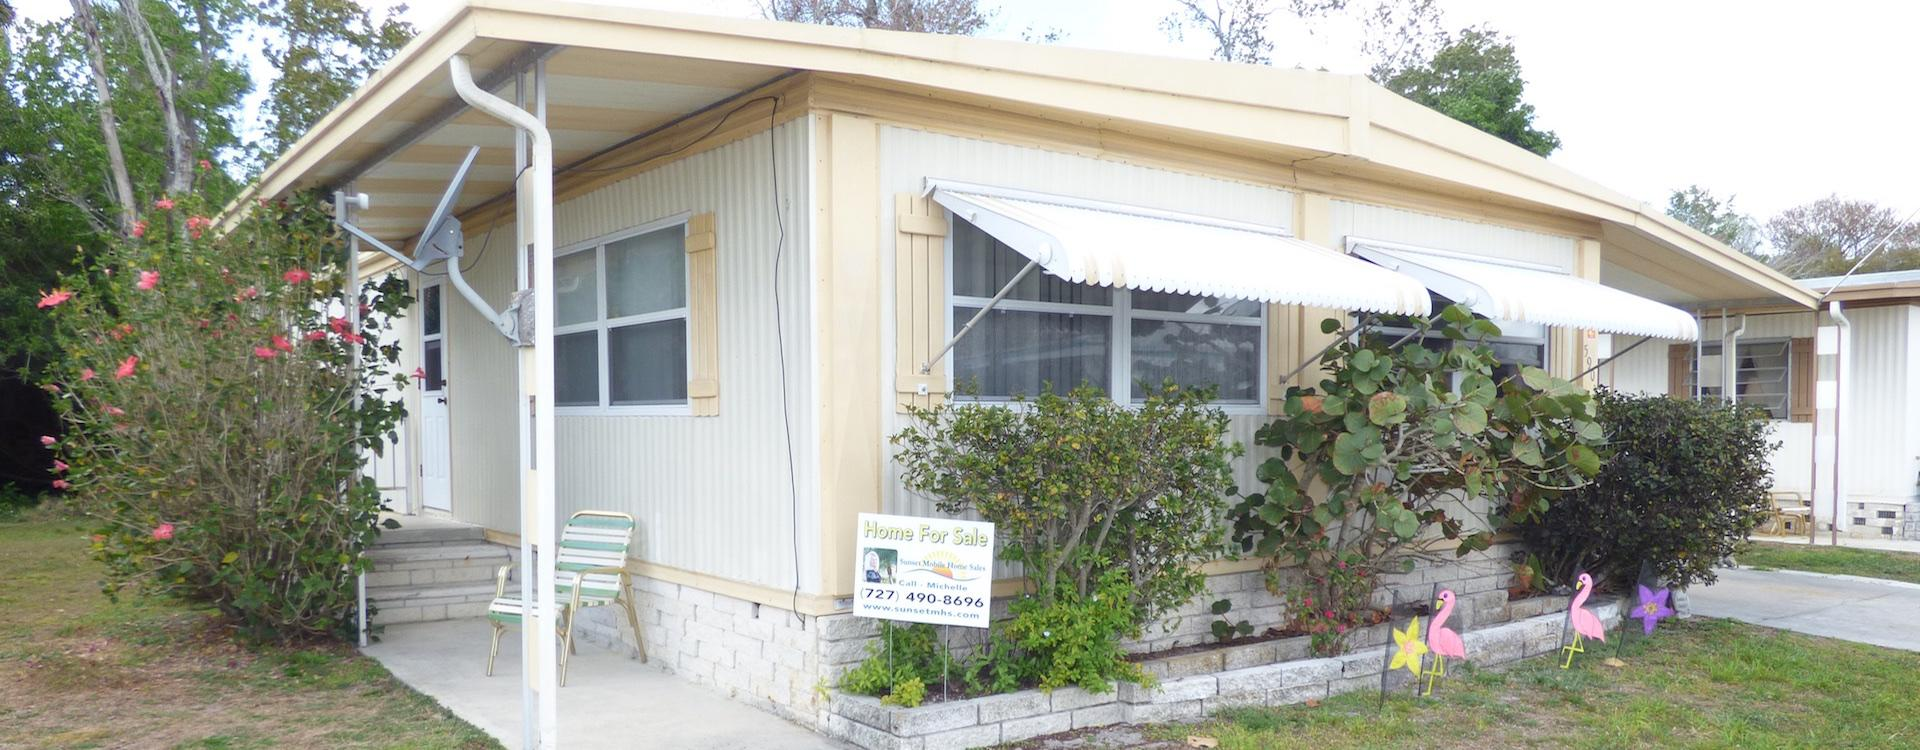 Used-Mobile-Home-For-Sale-a-001-Wide View New Mobile Homes on view new cars, stream mobile homes, stylish mobile homes,